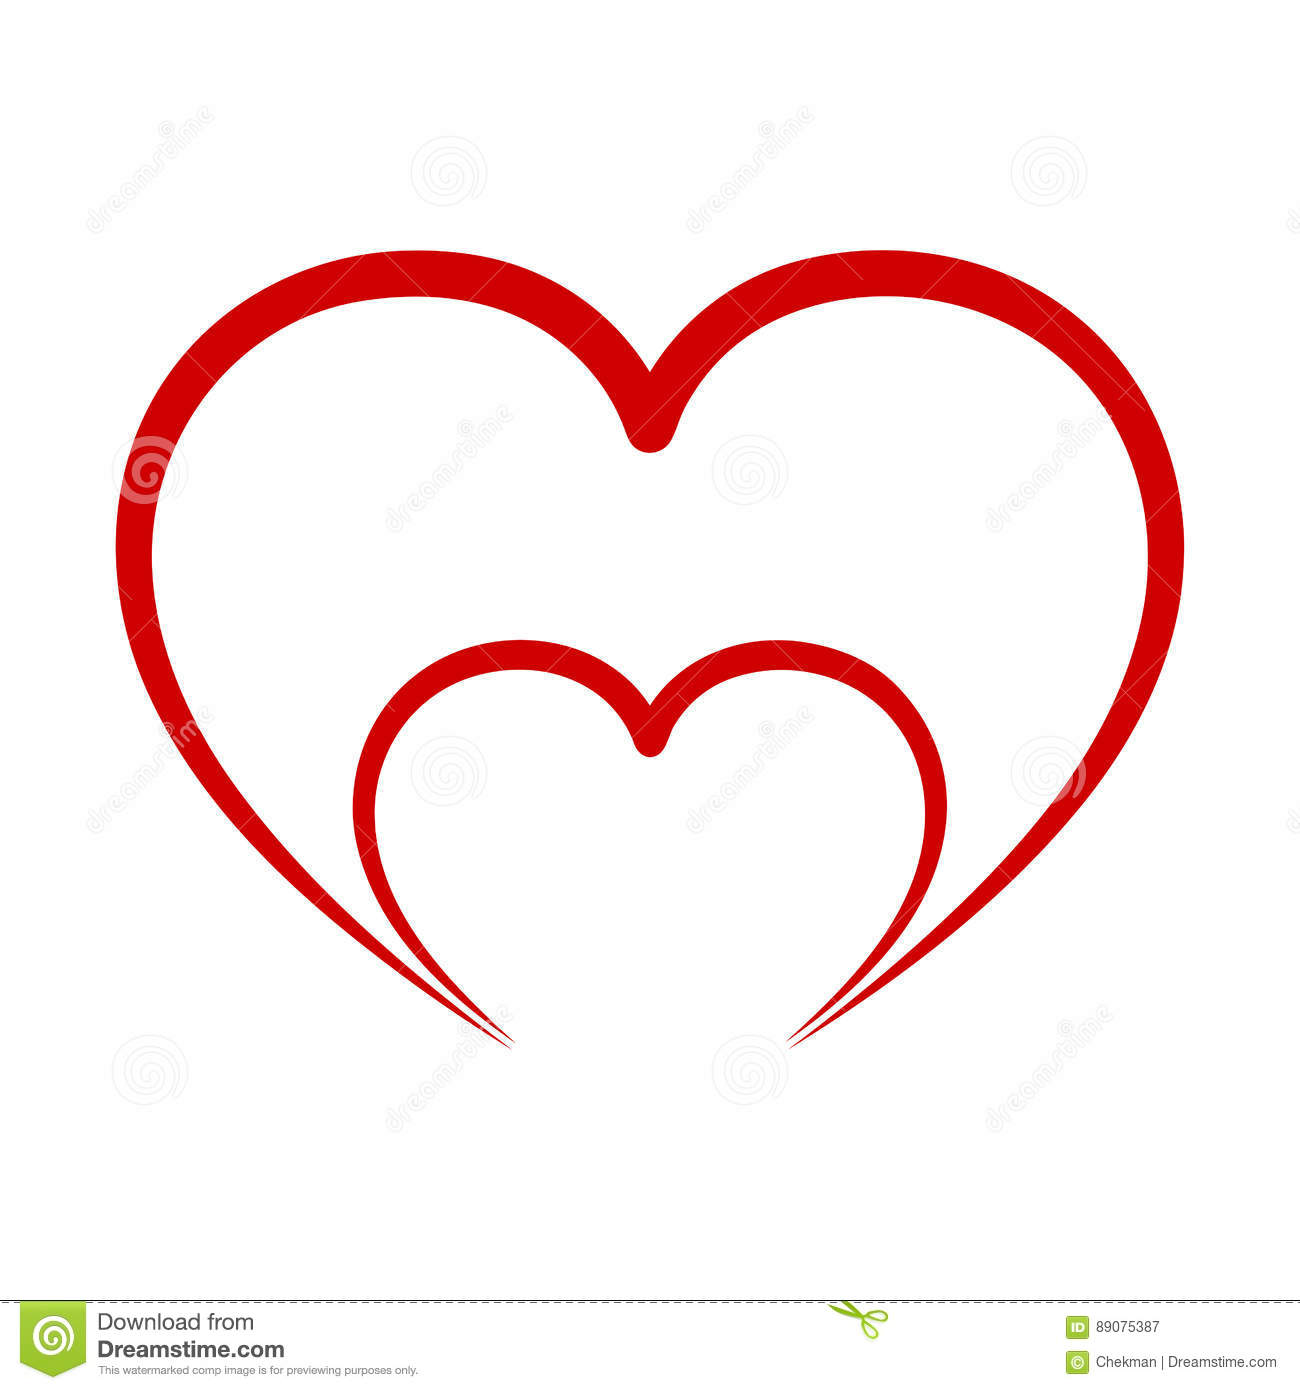 abstract heart icon vector illustration stock illustration rh dreamstime com heart icon vector free download heart icon vector ai